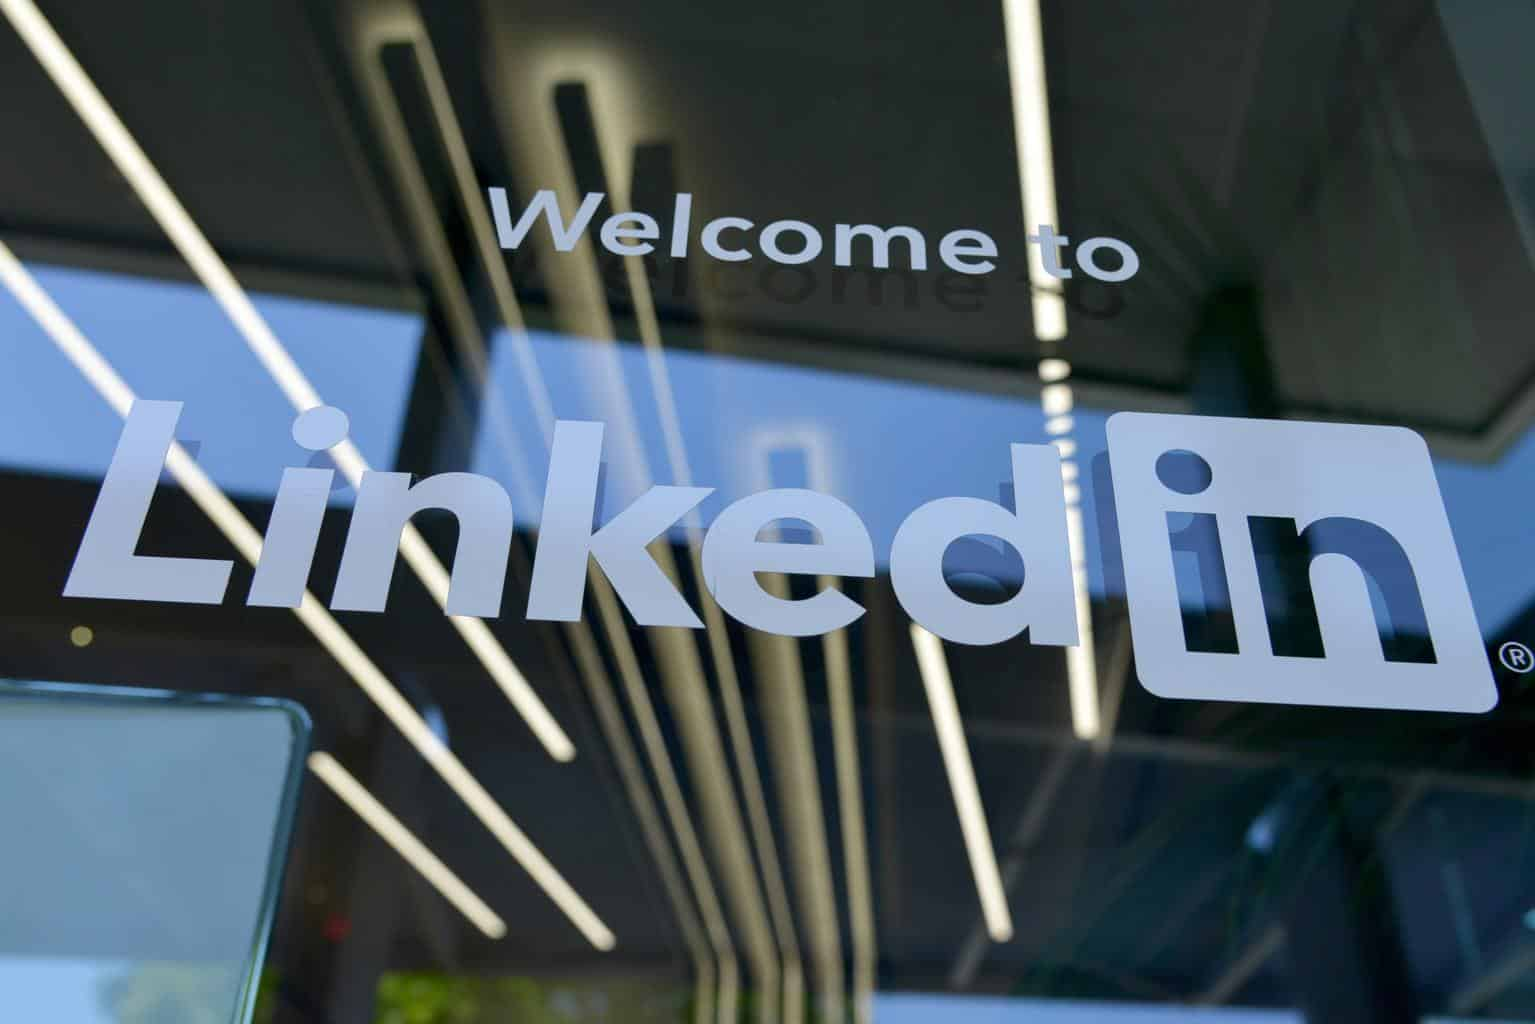 How to Build My Network on LinkedIn? Here's 15 Ways to Grow Your LinkedIn Network